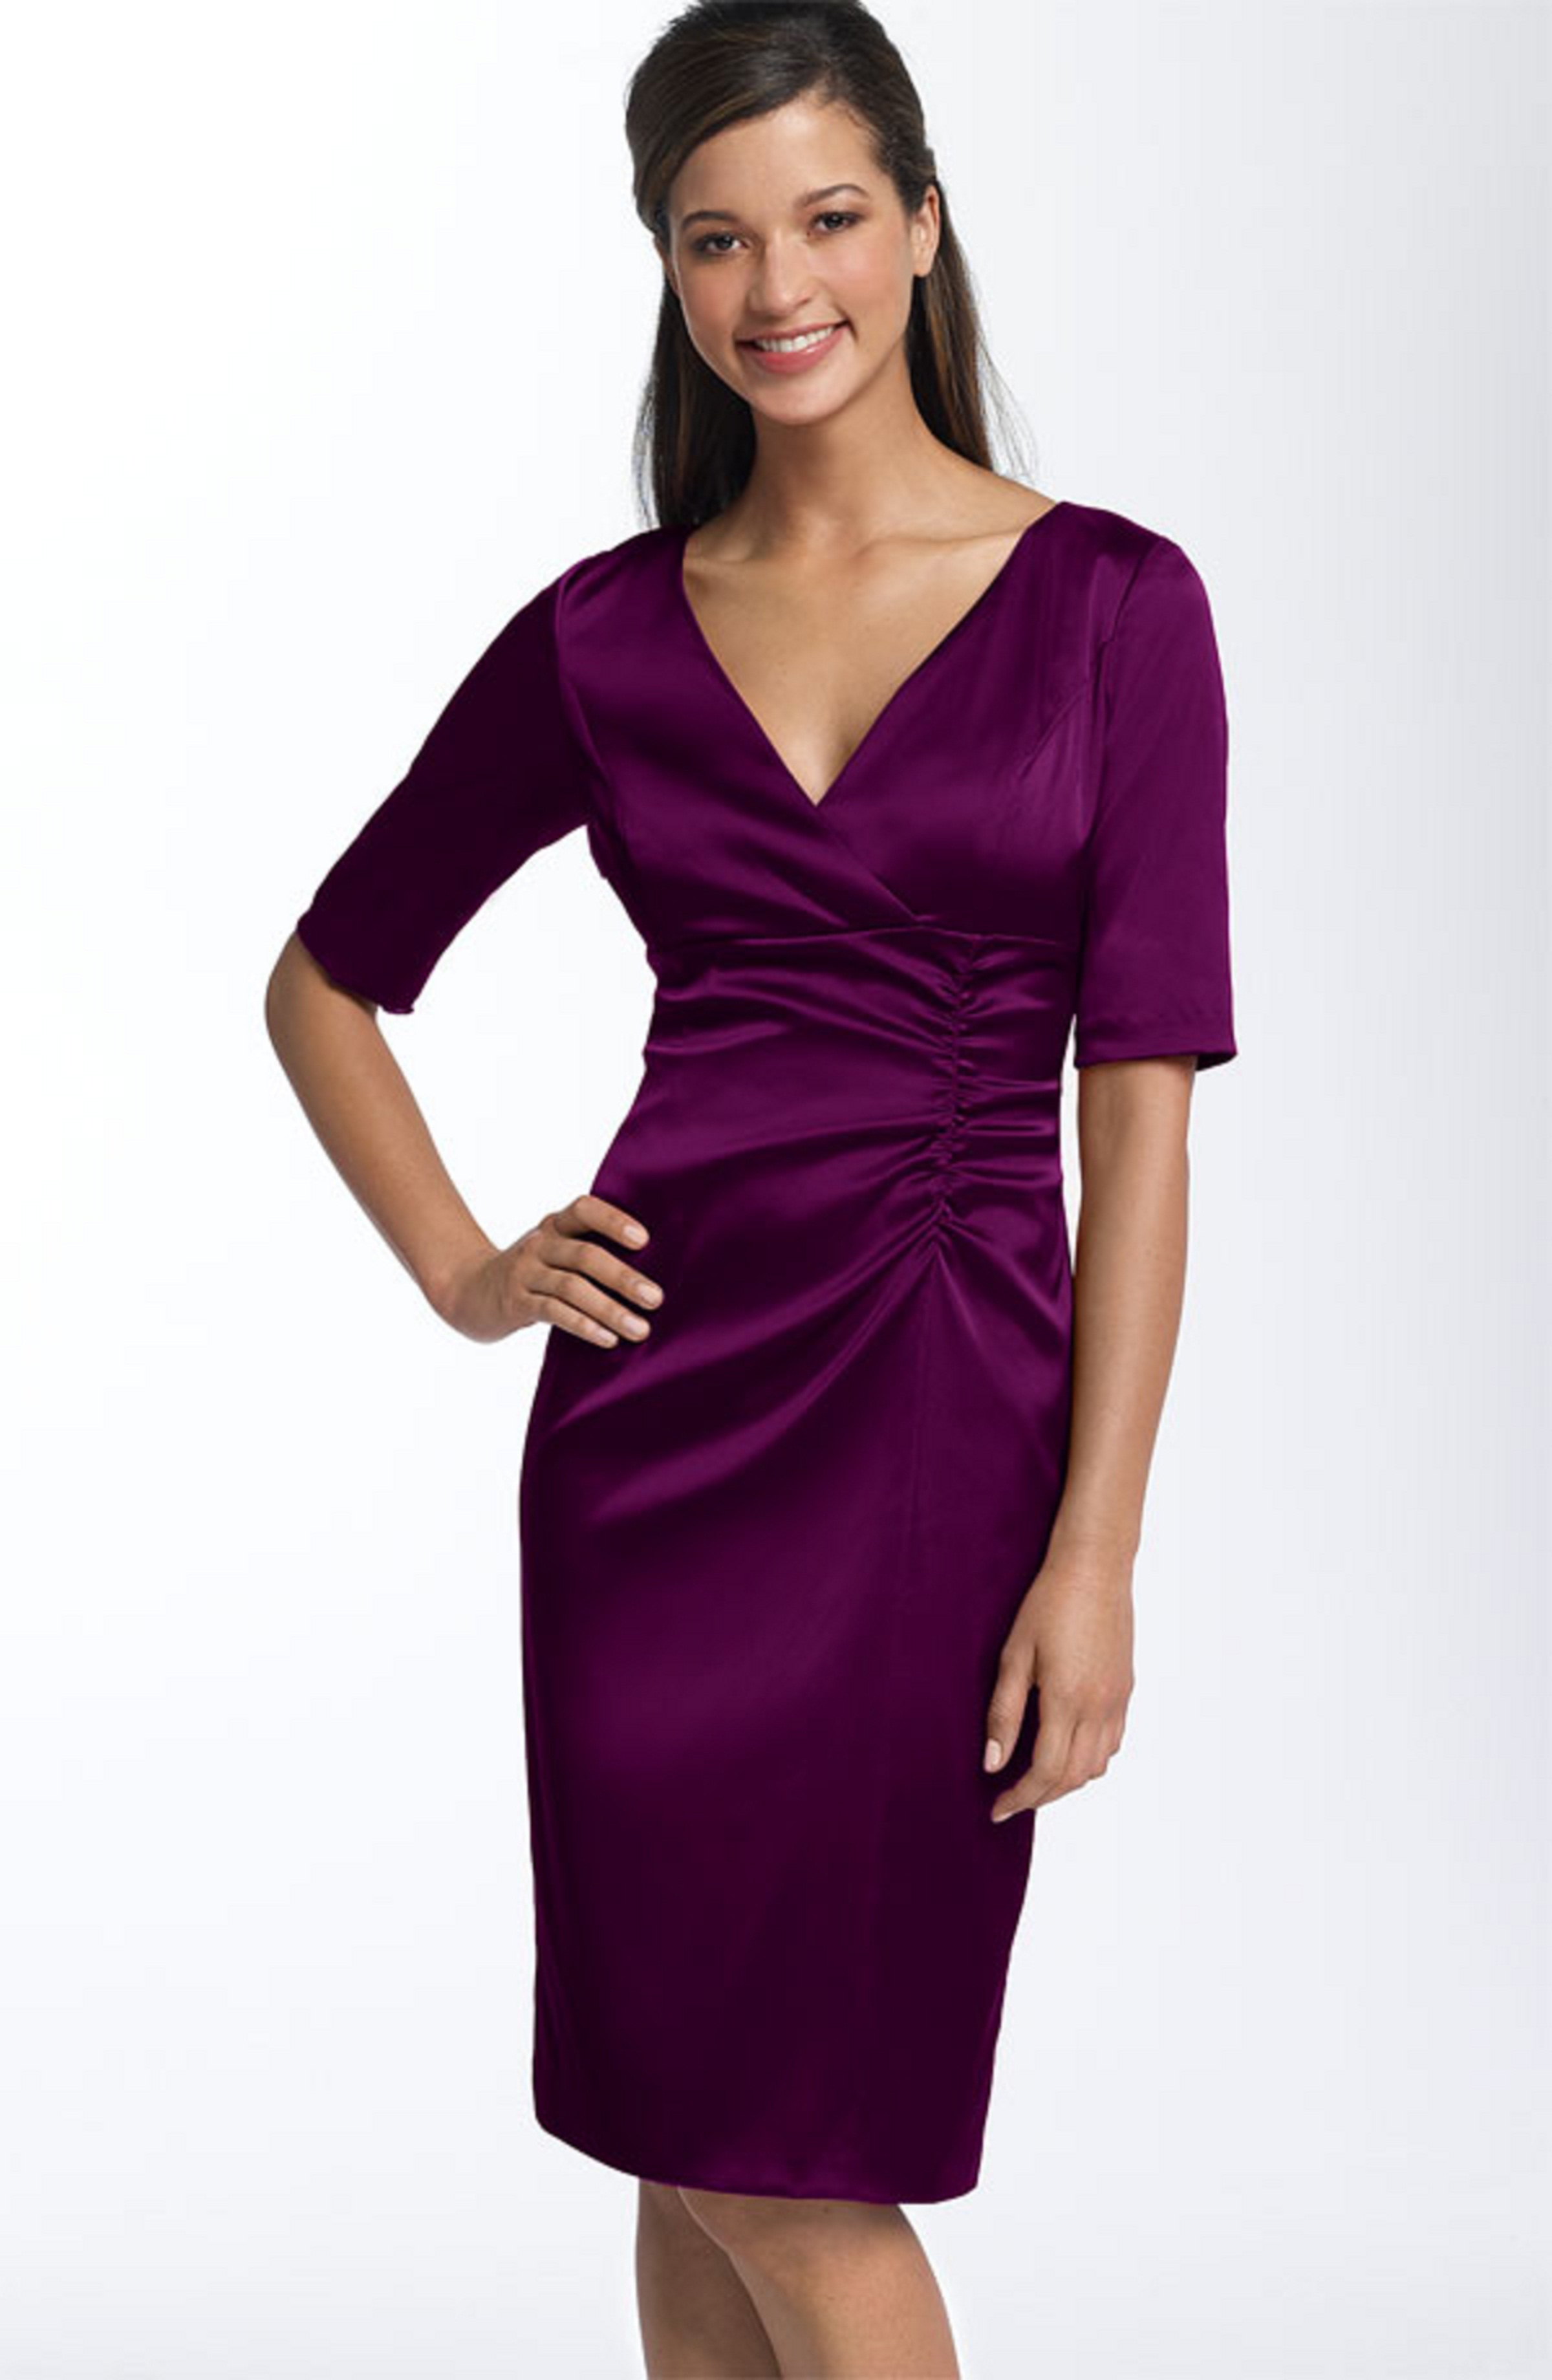 Corporate attire women Business suits for women Smart & Business Casual Work suits for women Formal & Business Attire Business professional dress Corporate Wear Business Outfits Business Fashion Classic Fashion Shabby Chic Fashion Outfit Work Dapper Clothing Formal Fashion Fashion Clothes Lace Dresses Formal Dresses Elegant Dresses Woman.